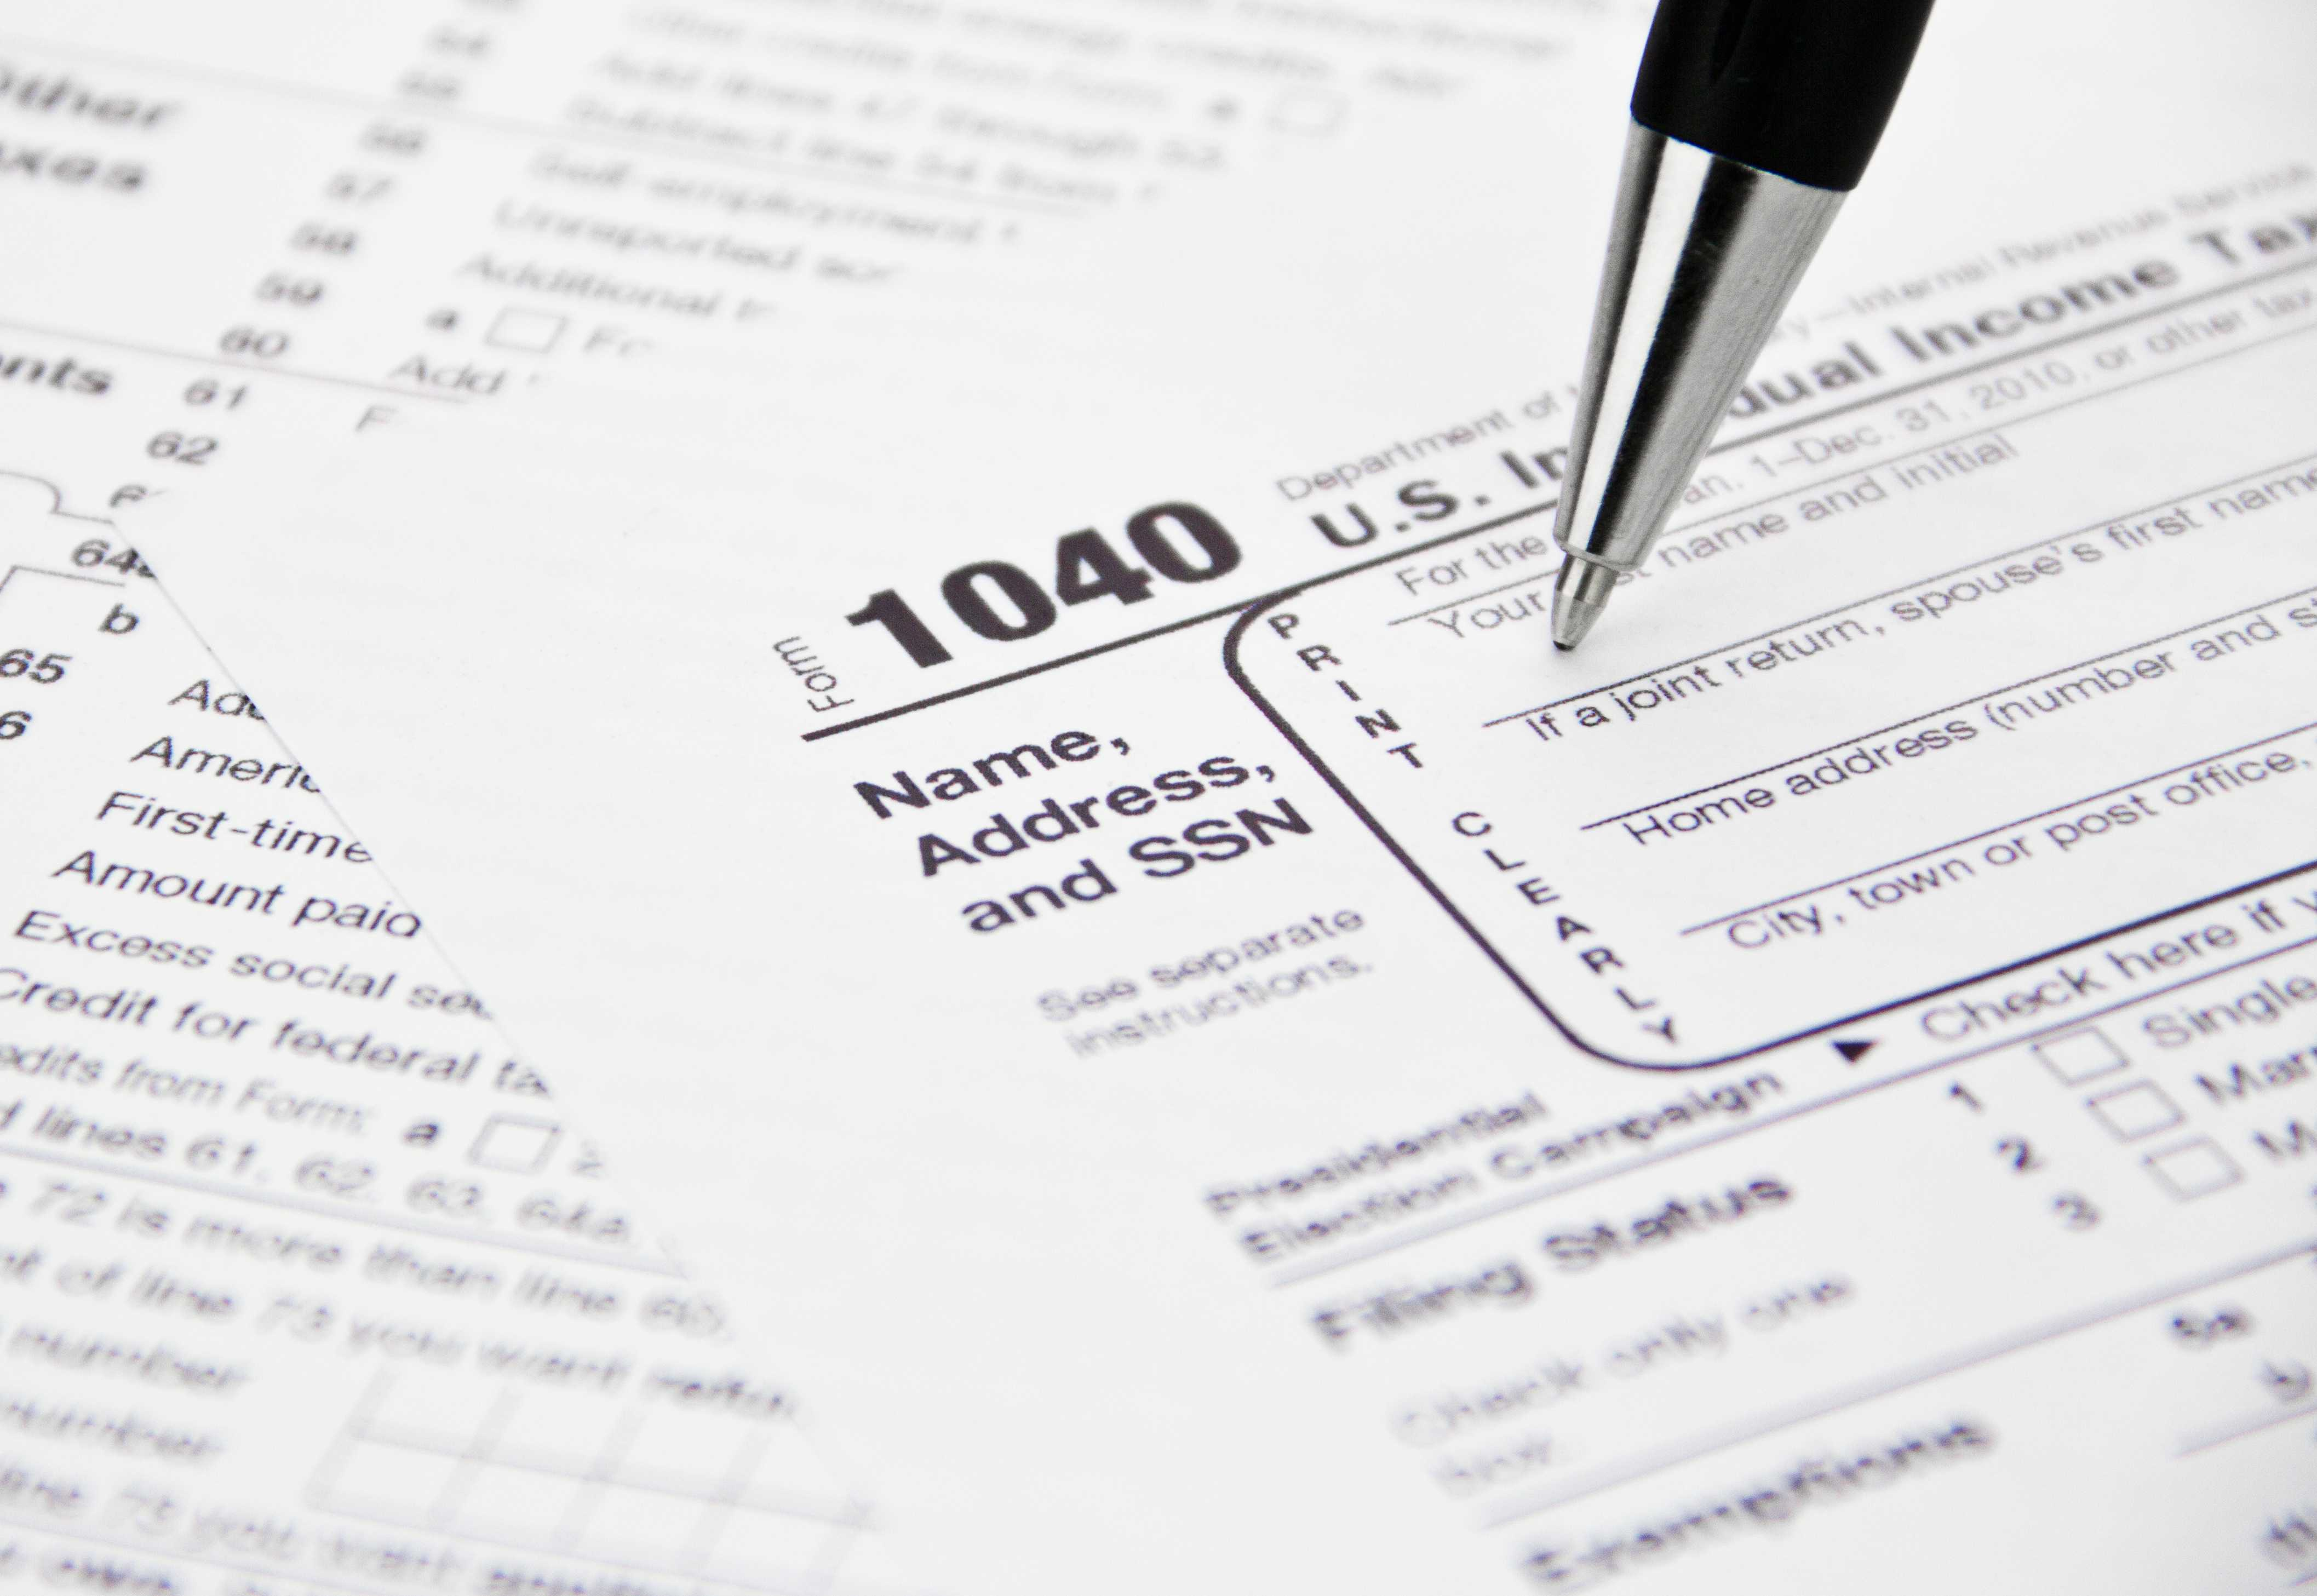 VITA offers free low-income tax services